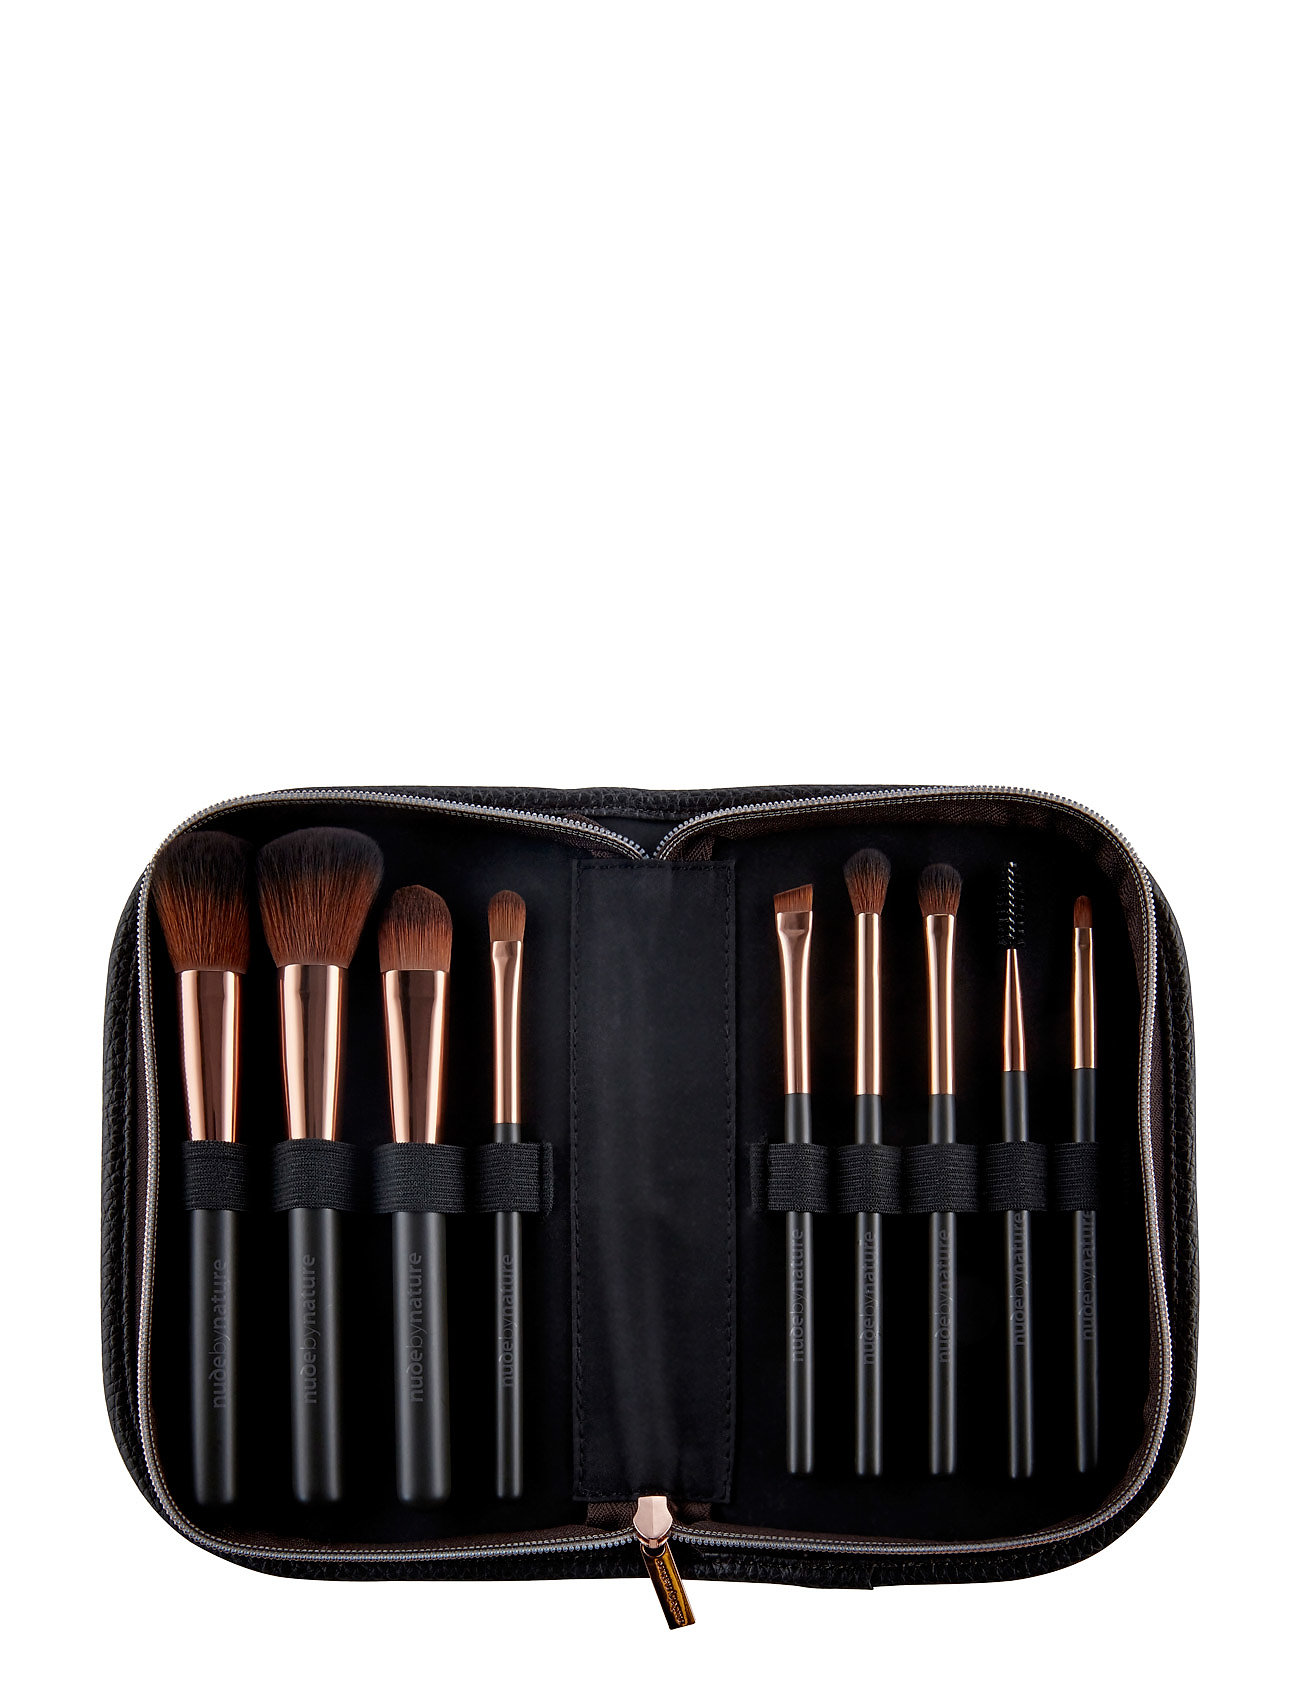 Image of Brushes Ultimate Coll Prof Brush Set Beauty WOMEN Makeup Makeup Brushes Brush Set Nude Nude By Nature (3321214691)